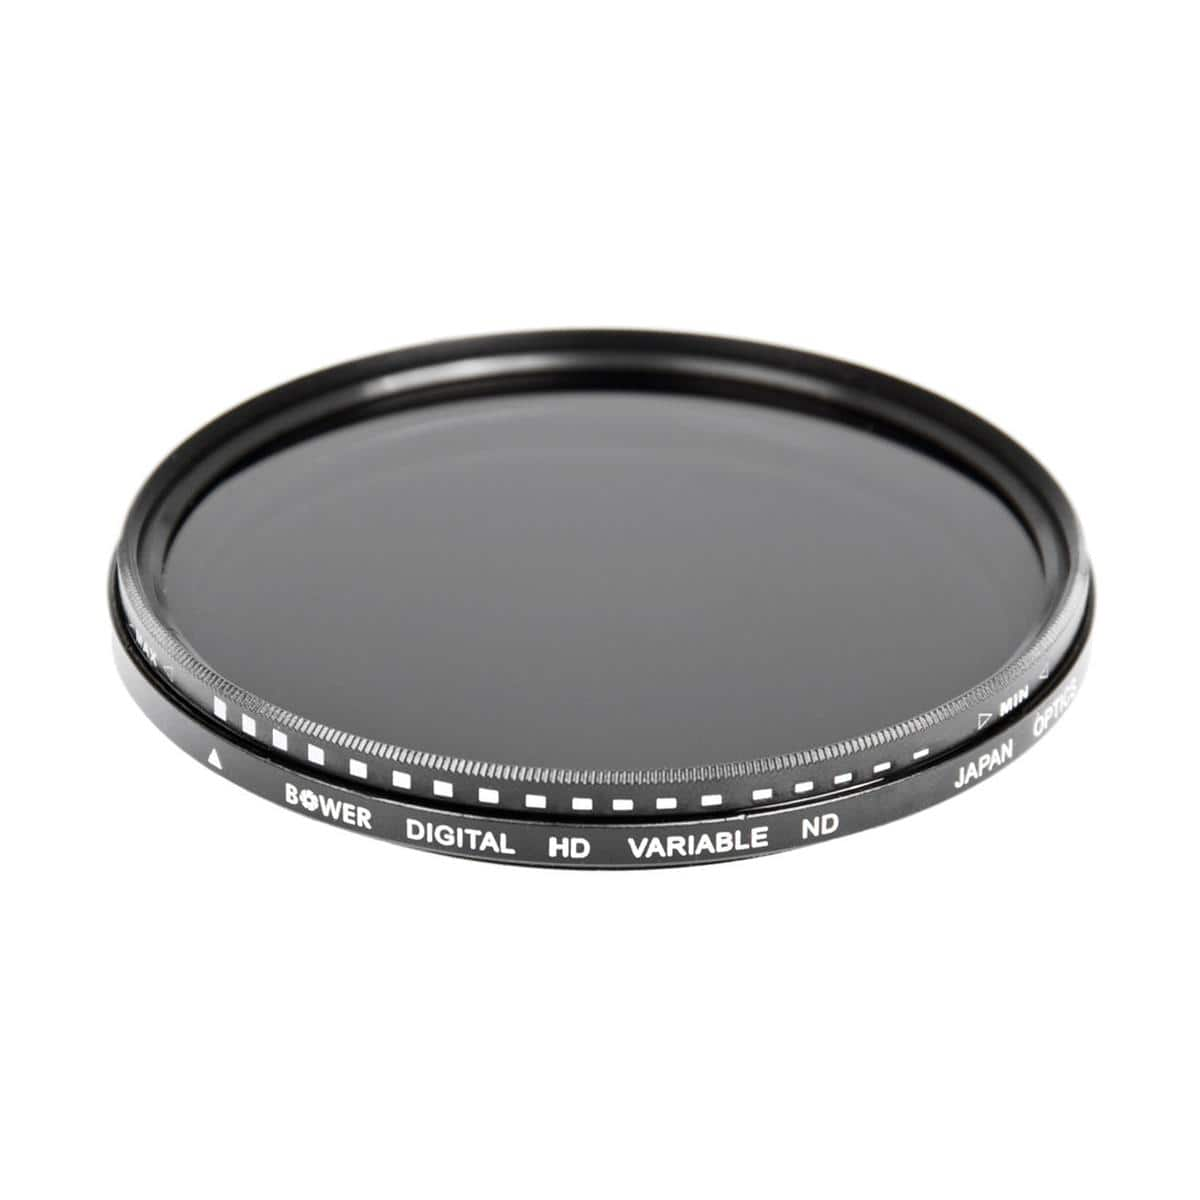 Bower 77mm Variable Neutral Density (ND) Filter - 2 to 8 Stops - $21.95 (82mm - $29.95)